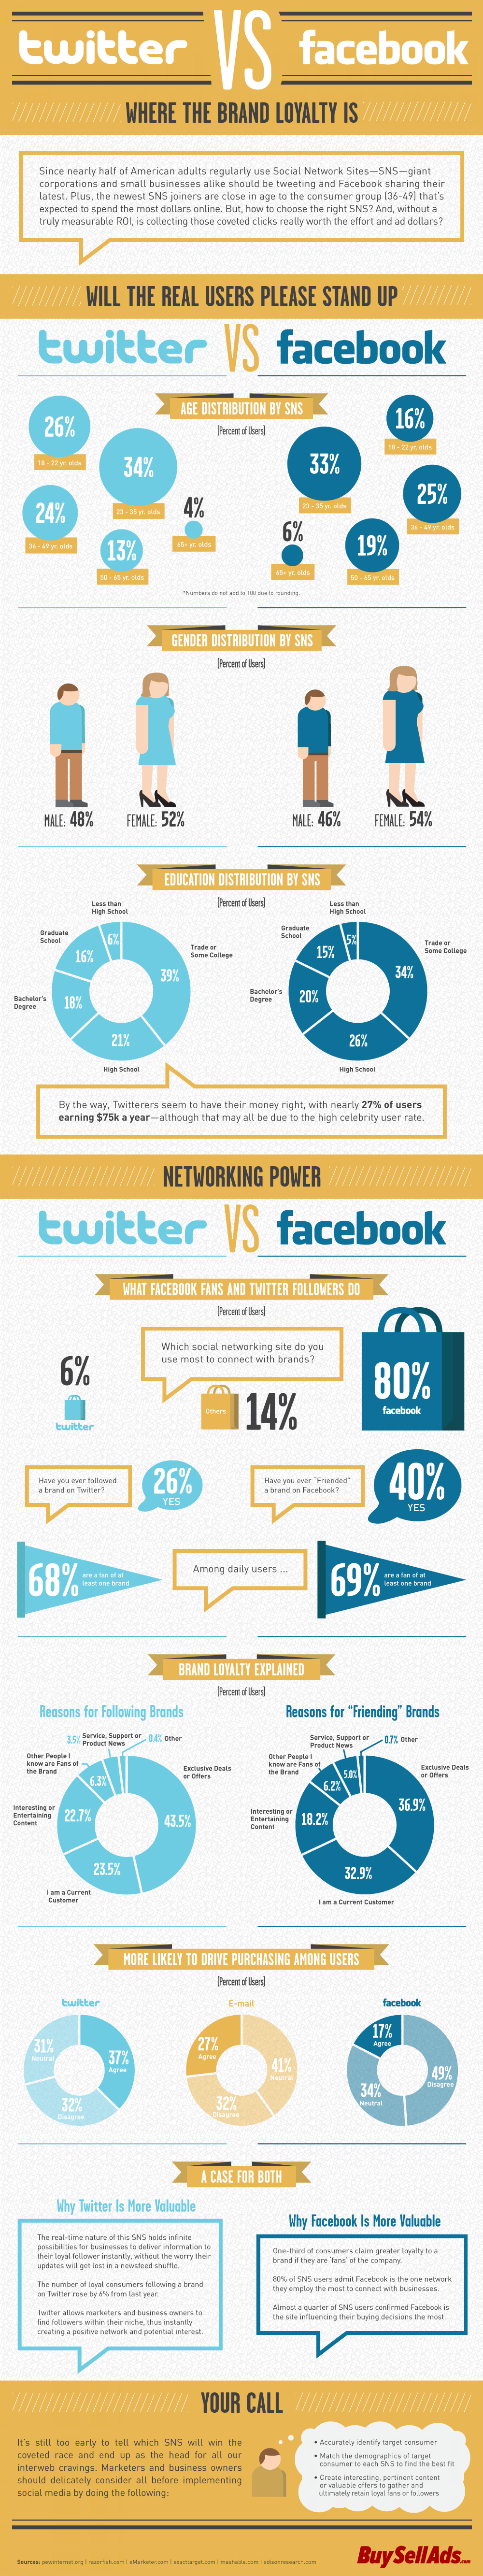 Twitter vs Facebook Infographic